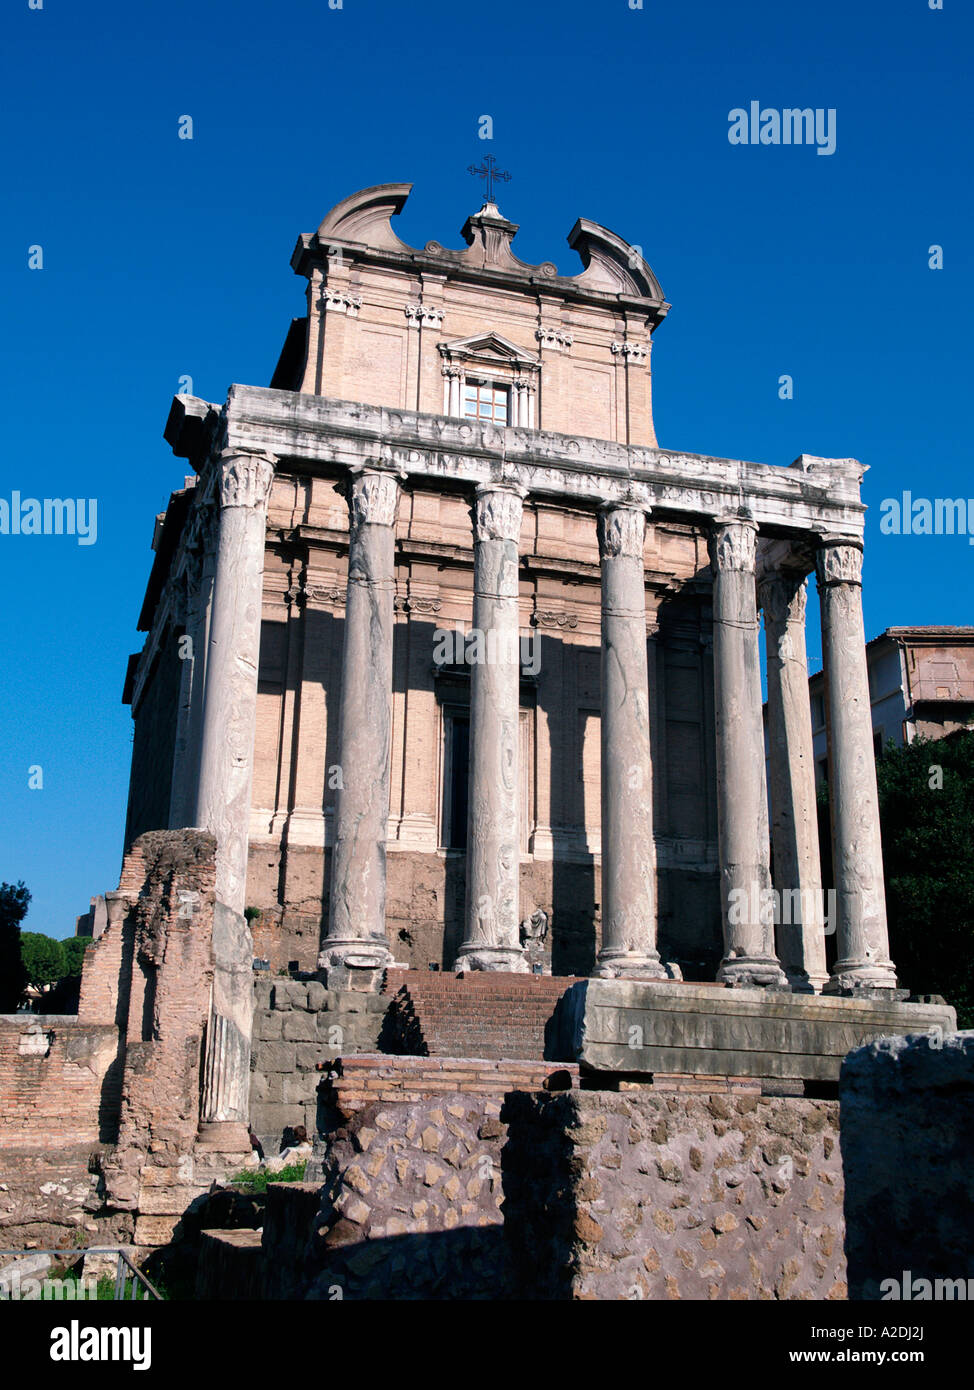 Temple of Anthony and Faustus, Roman Forum, Rome Italy - Stock Image